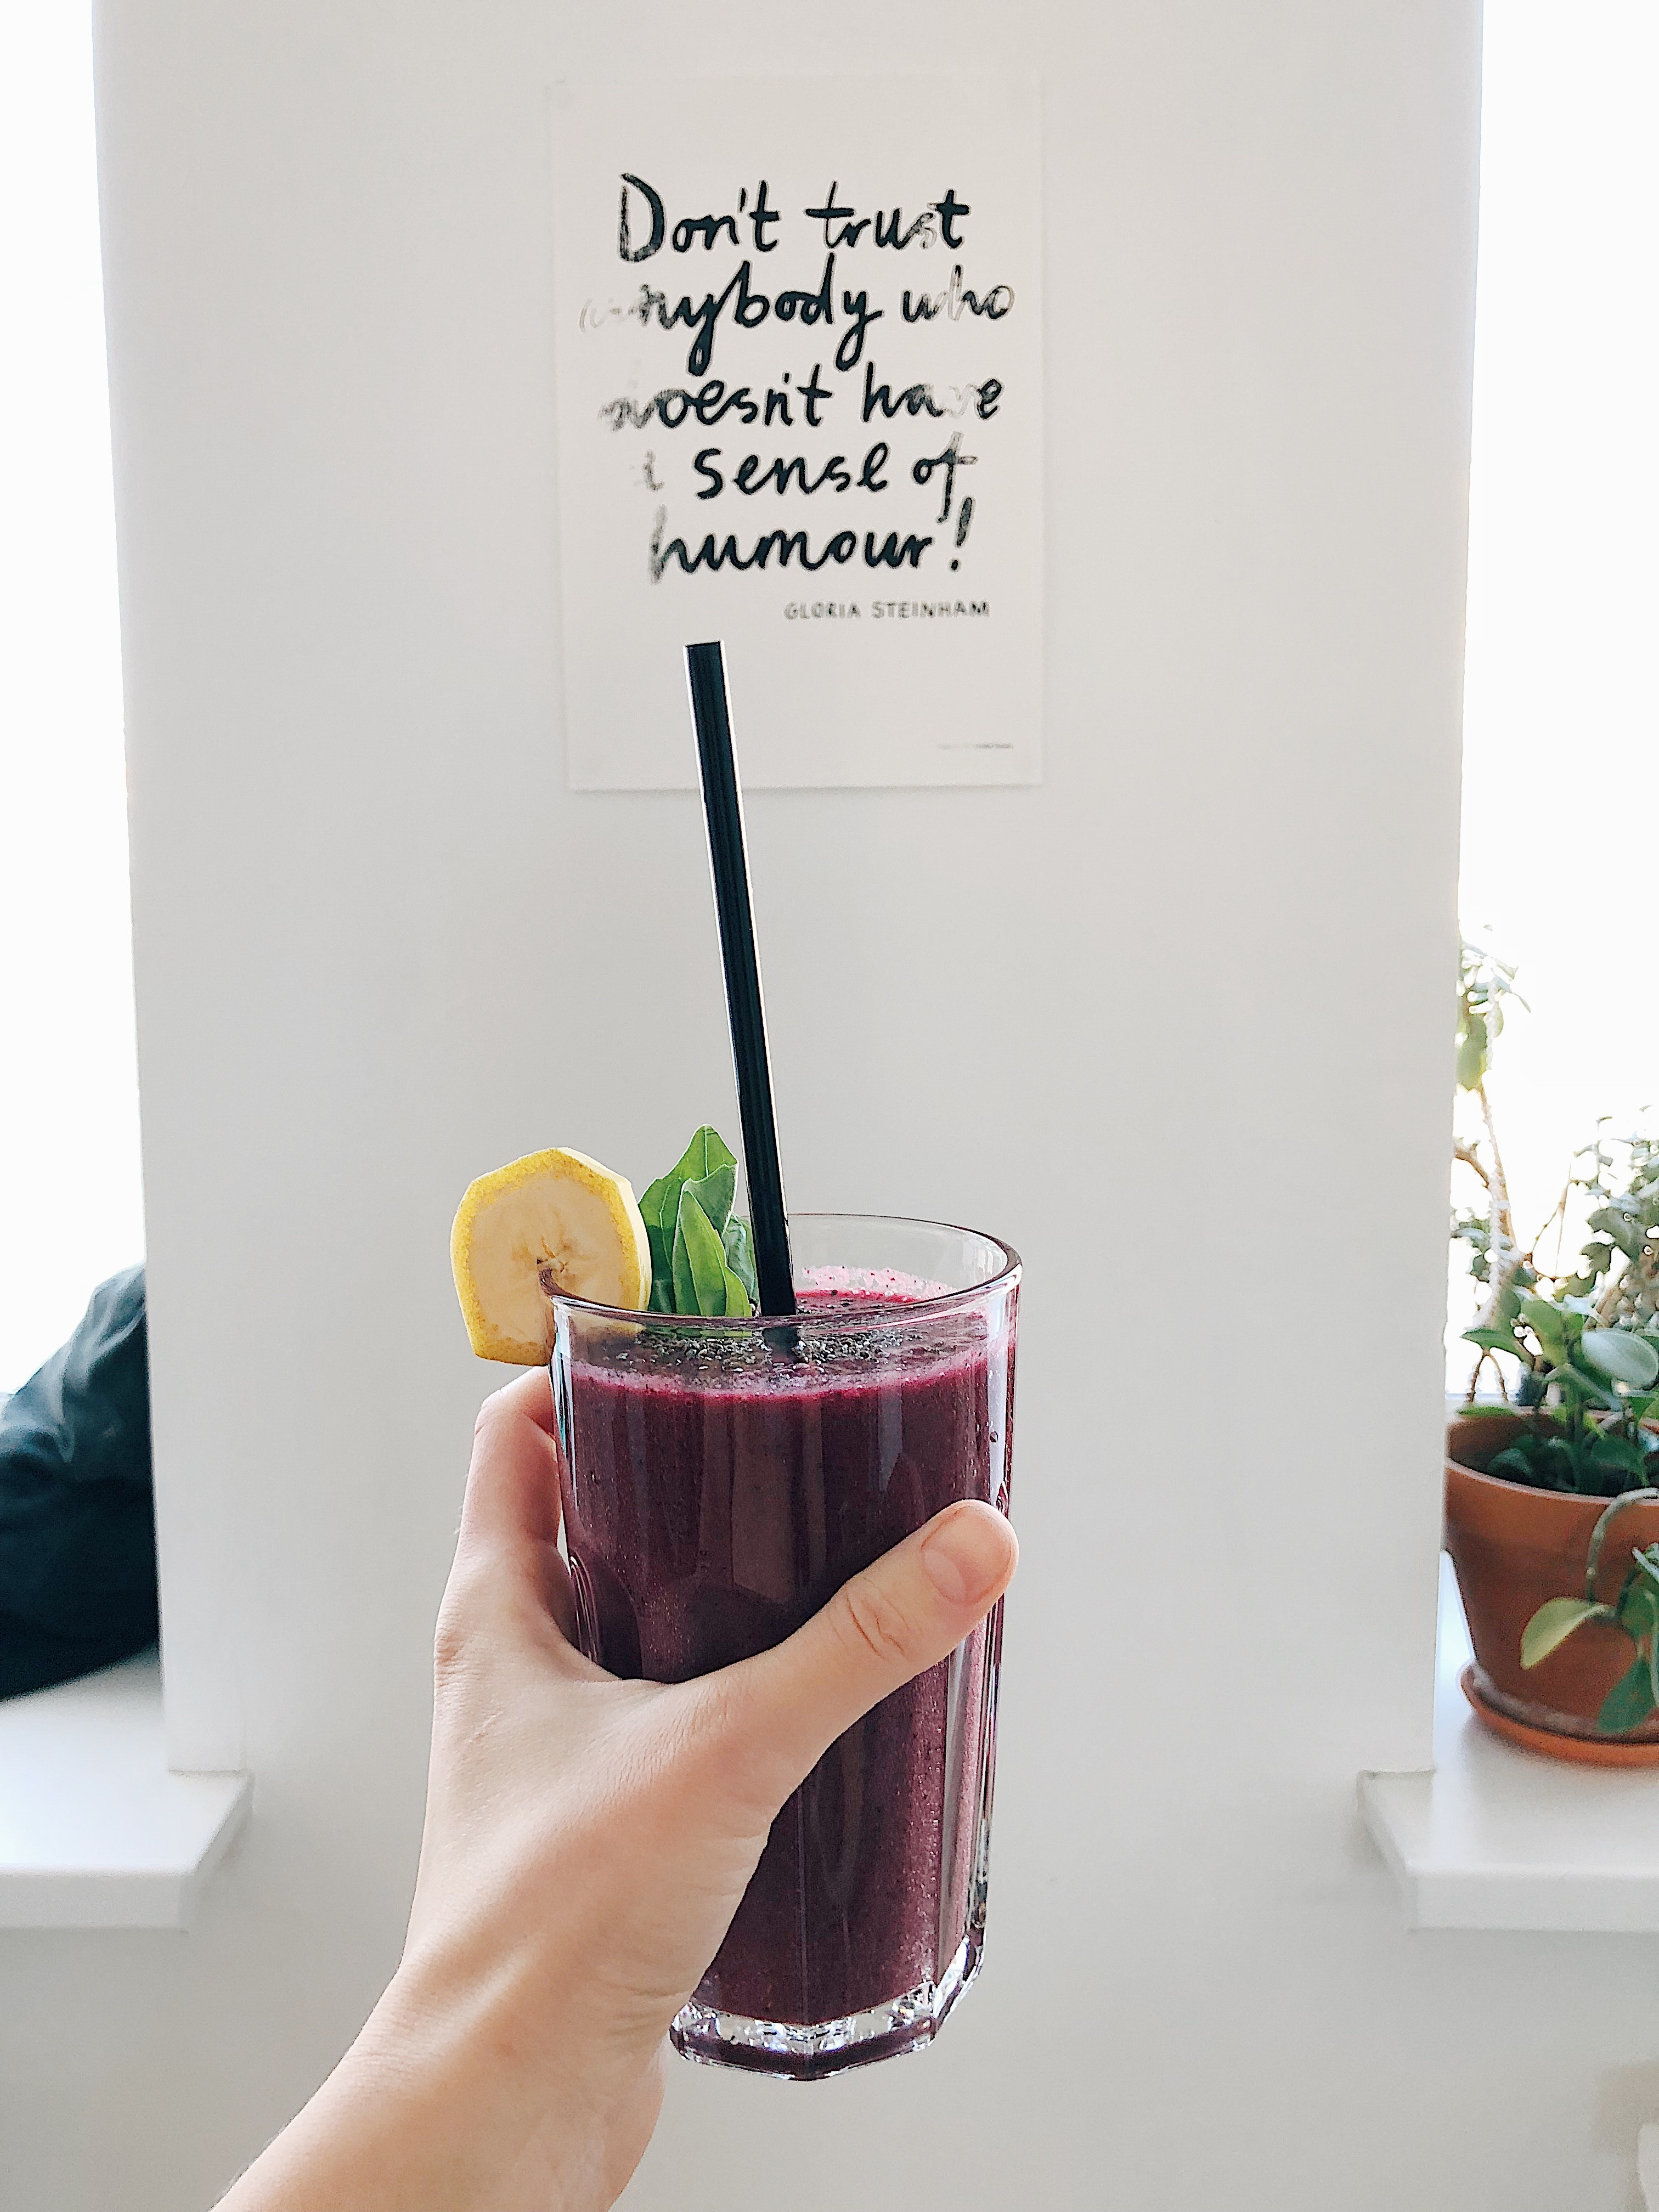 Person Holding Clear Drinking Glass With Purple Smoothie With Quotation Decor, Lifestyle, Smoothie, Raw, Quote, HQ Photo